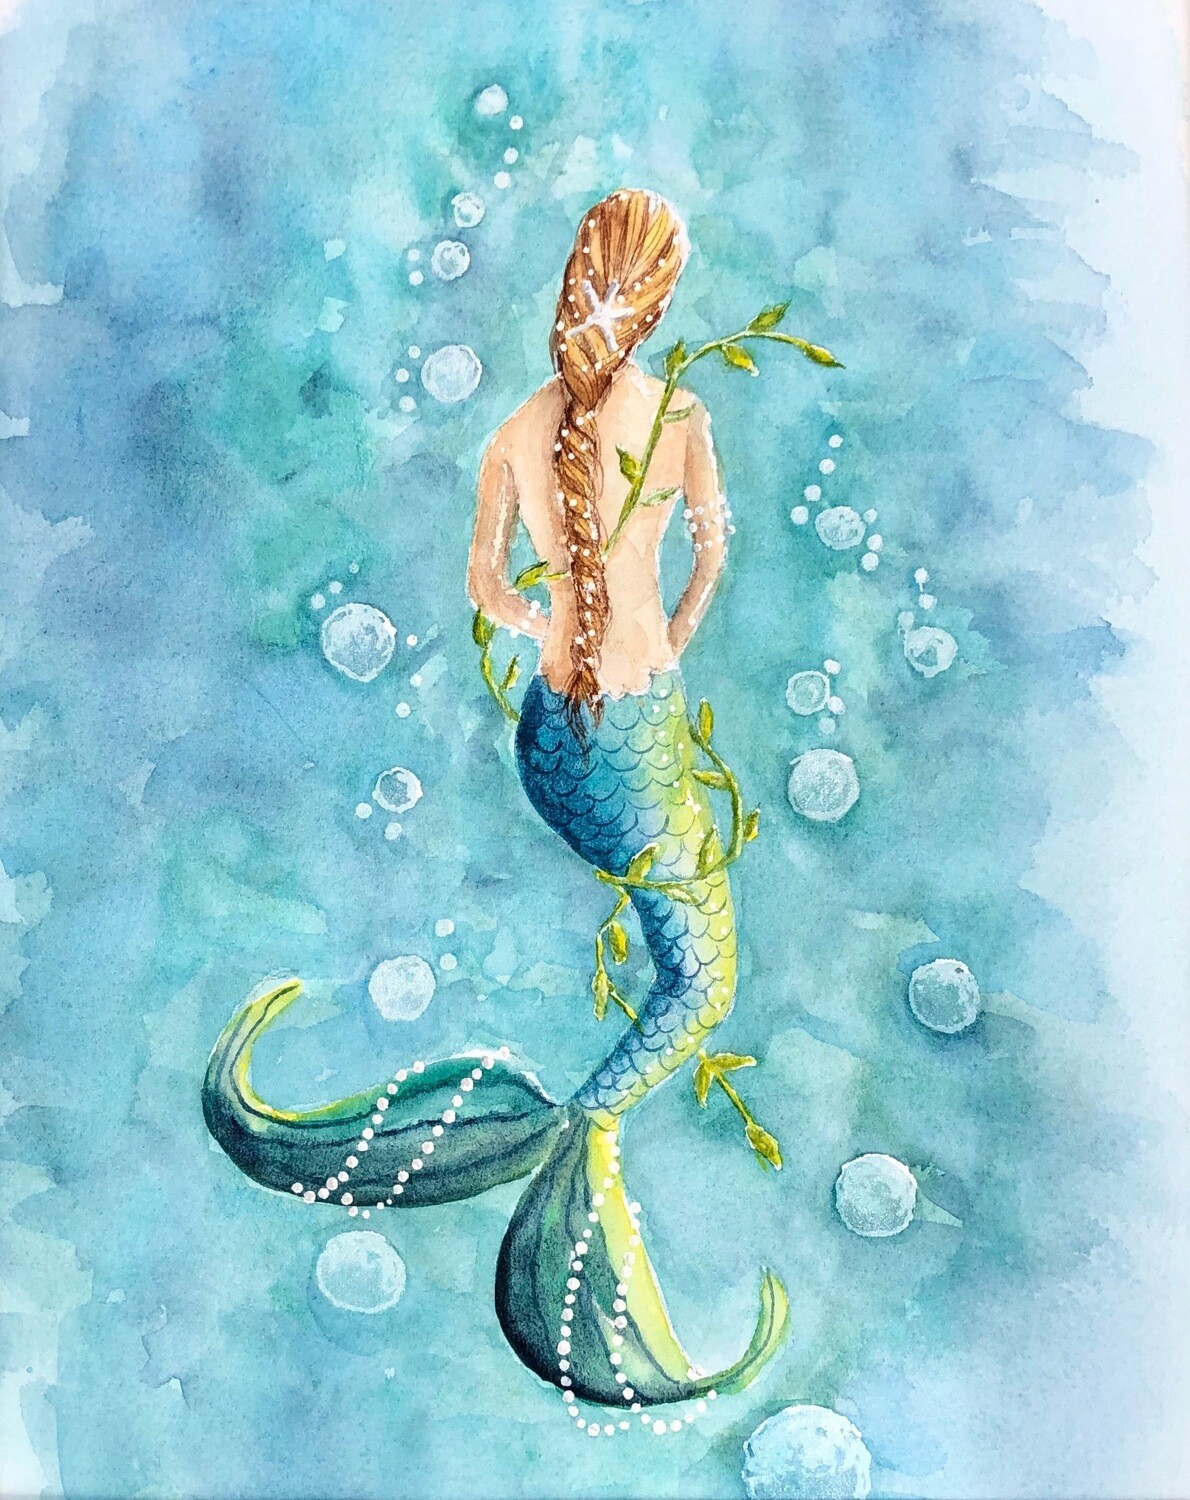 5x7 Giclee Print: Bubbly Mermaid Unframed